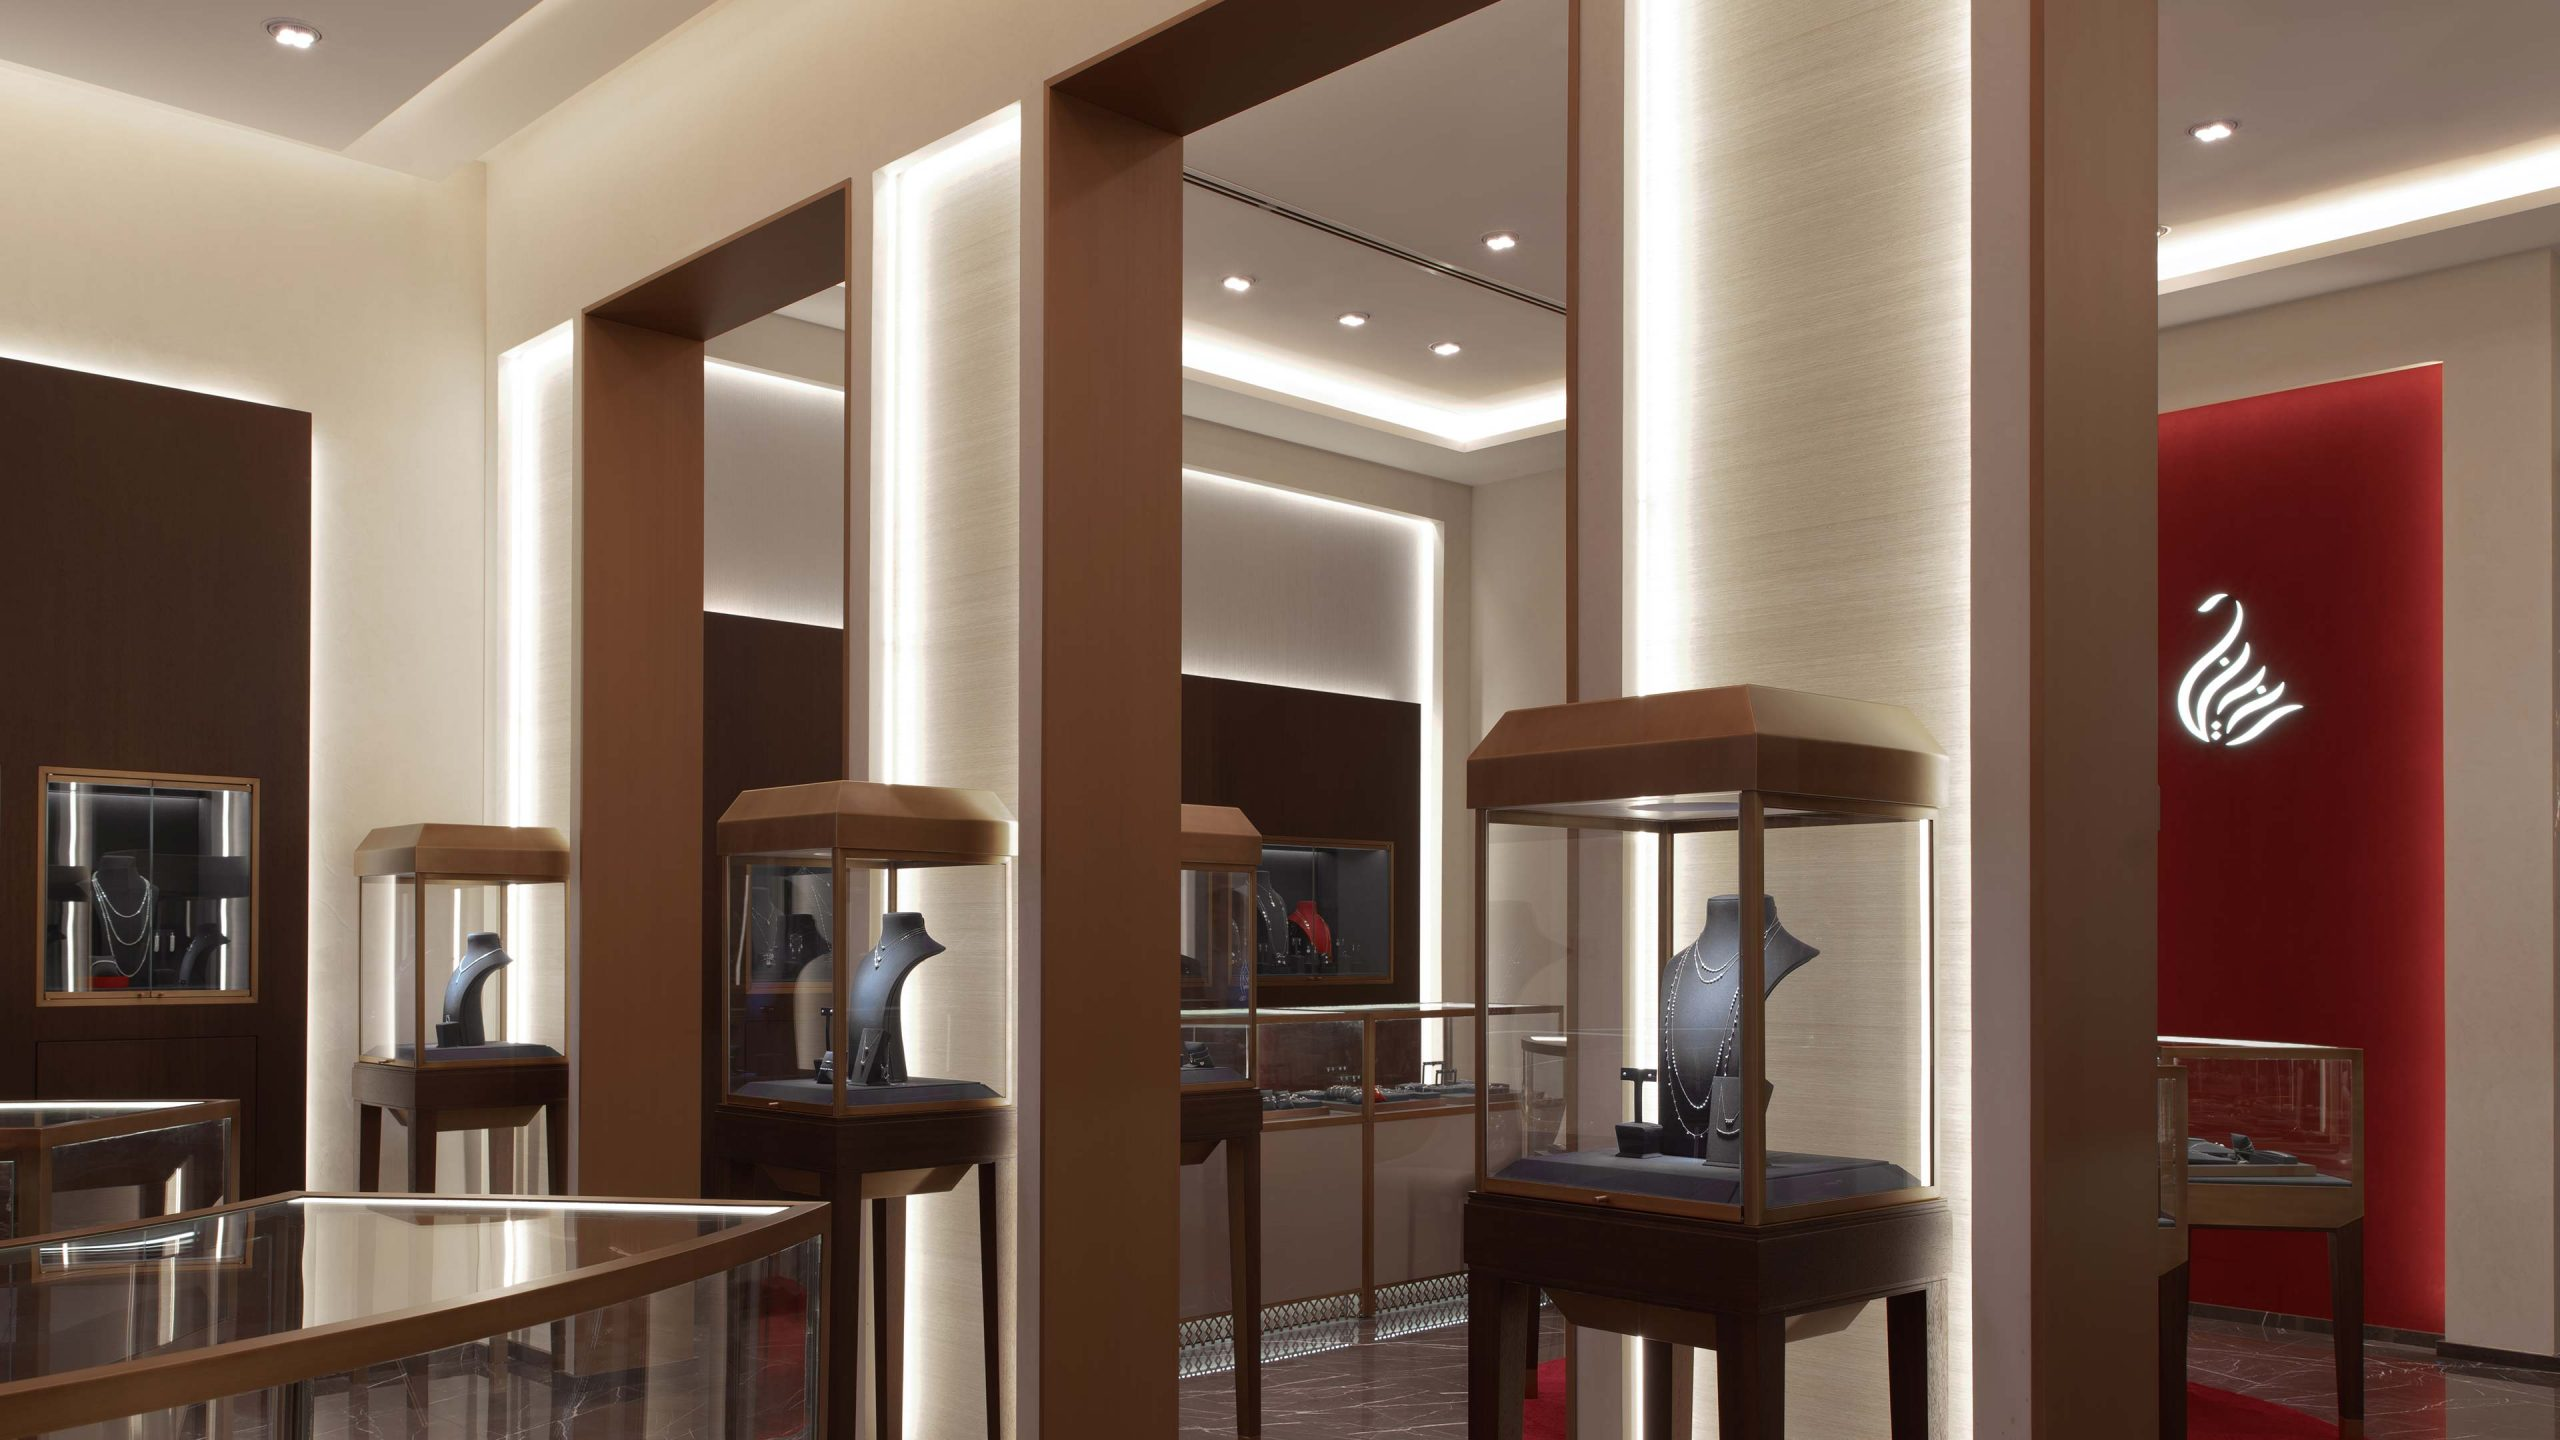 Architectural Lighting Design Retail Jewellery Store Al Zain Bahrain Integrated Cabinet Illumination Studio N